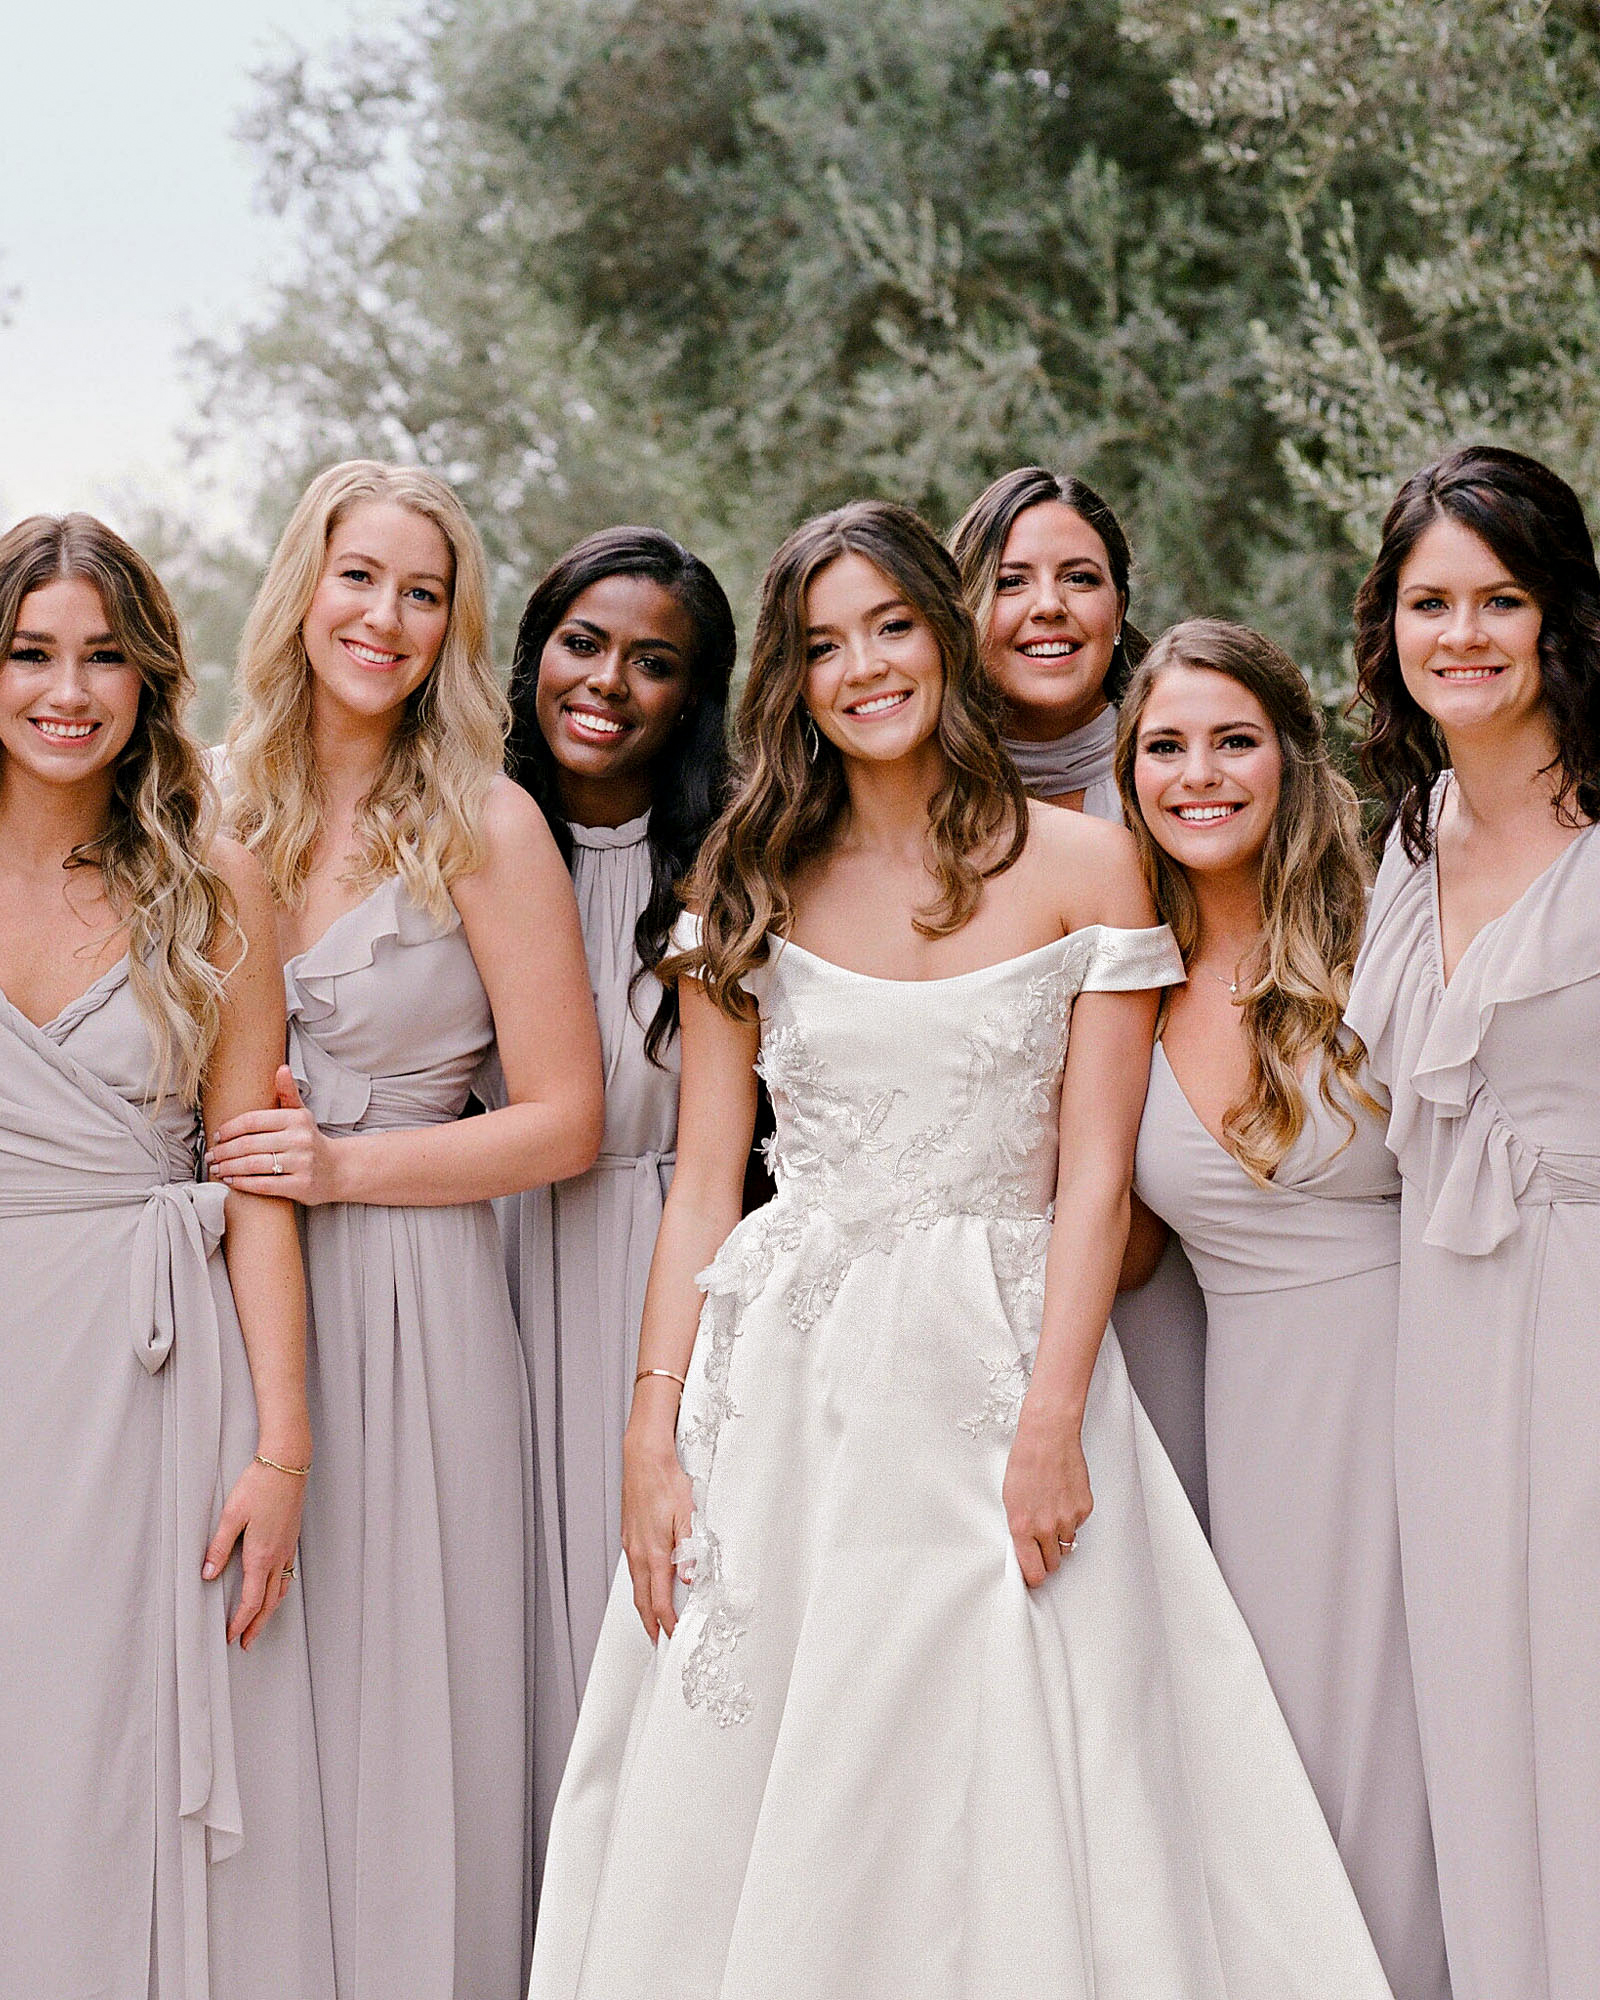 12 New Rules For Dressing Your Bridesmaids Martha Stewart,Cinderella Coming To America Wedding Dress